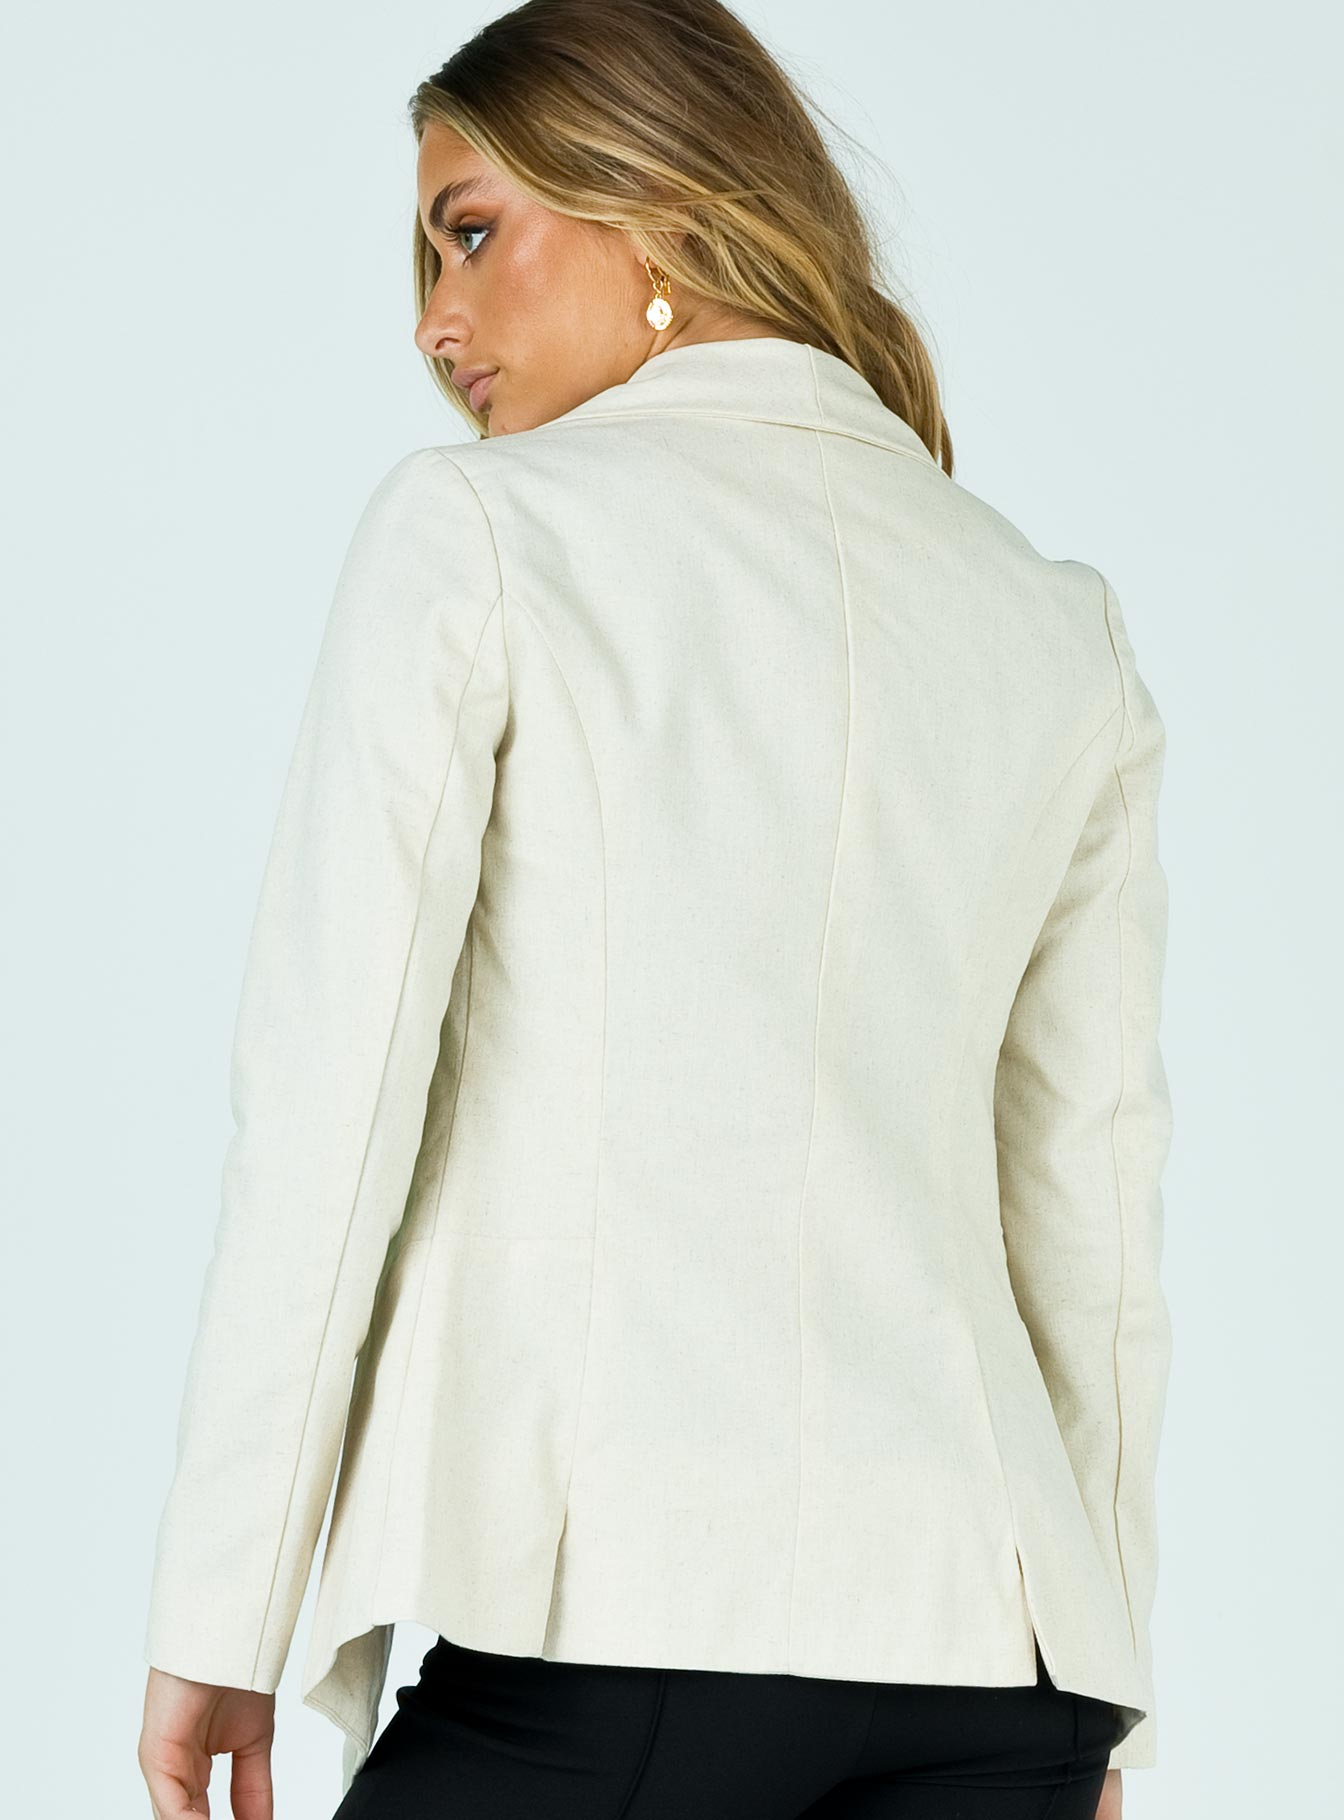 Juliana Jacket